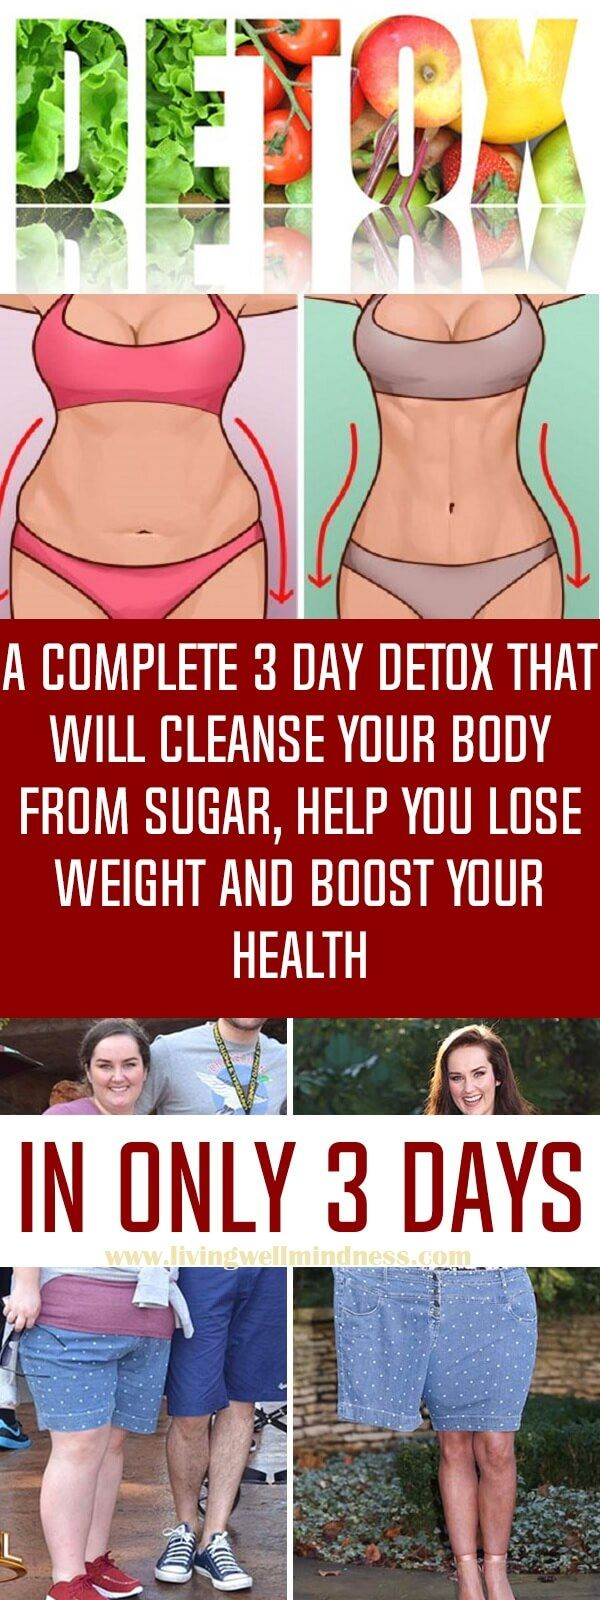 A Complete 3 Day Detox That Will Cleanse Your Body From Sugar, Help You Lose Weight And Boost Your Health - Living Wellmindness